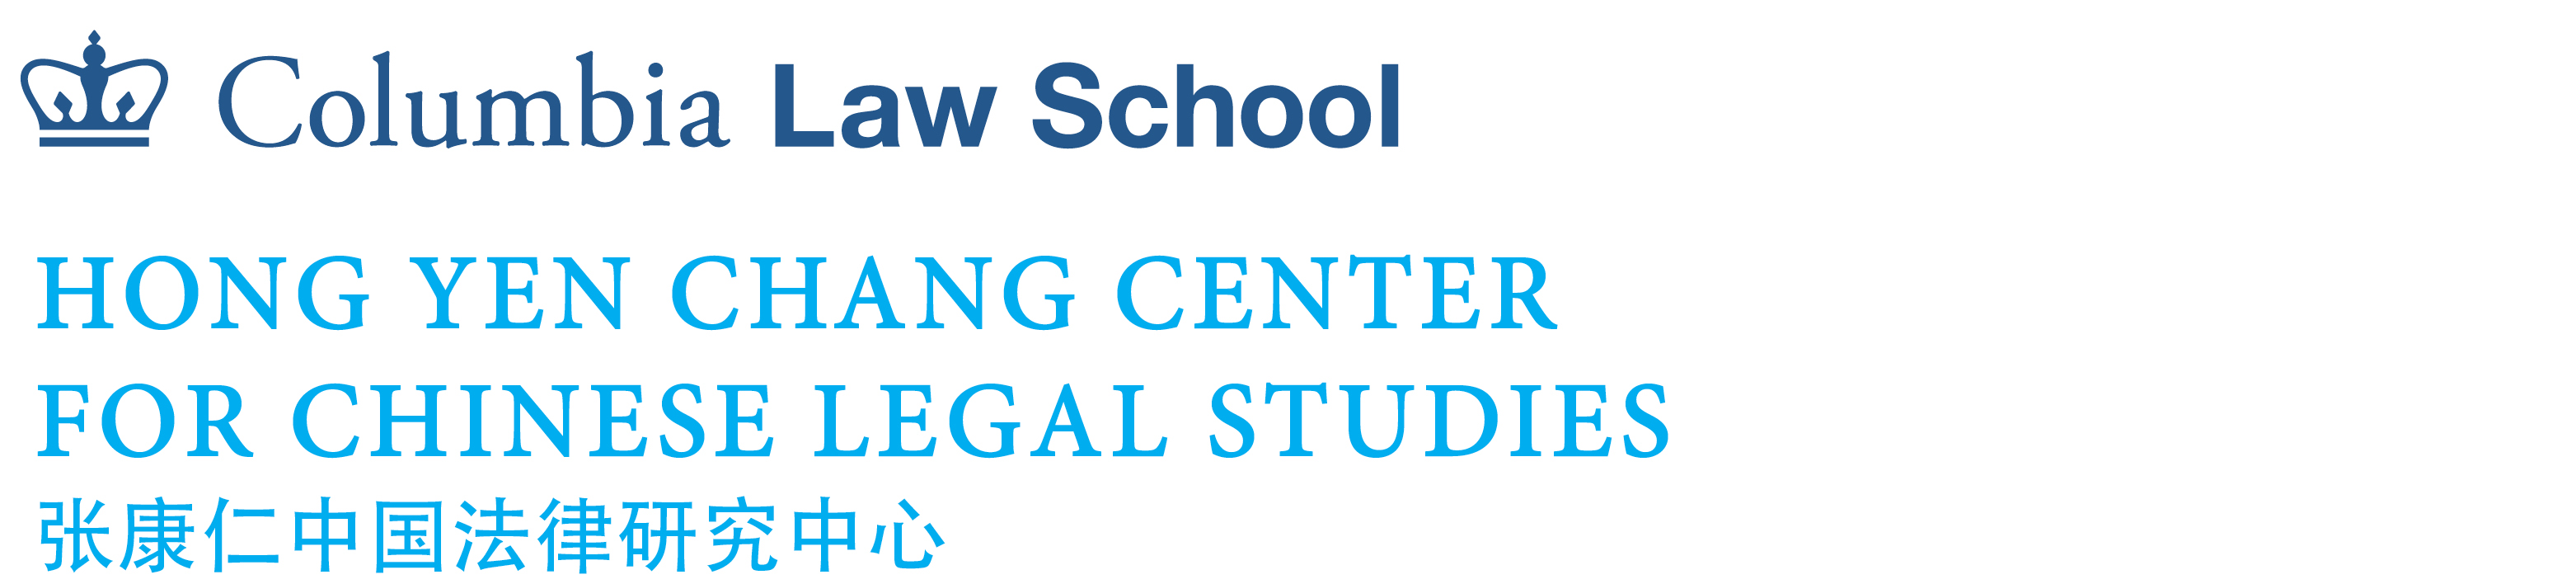 Hong Yen Chang Center for Chinese Legal Studies  logo